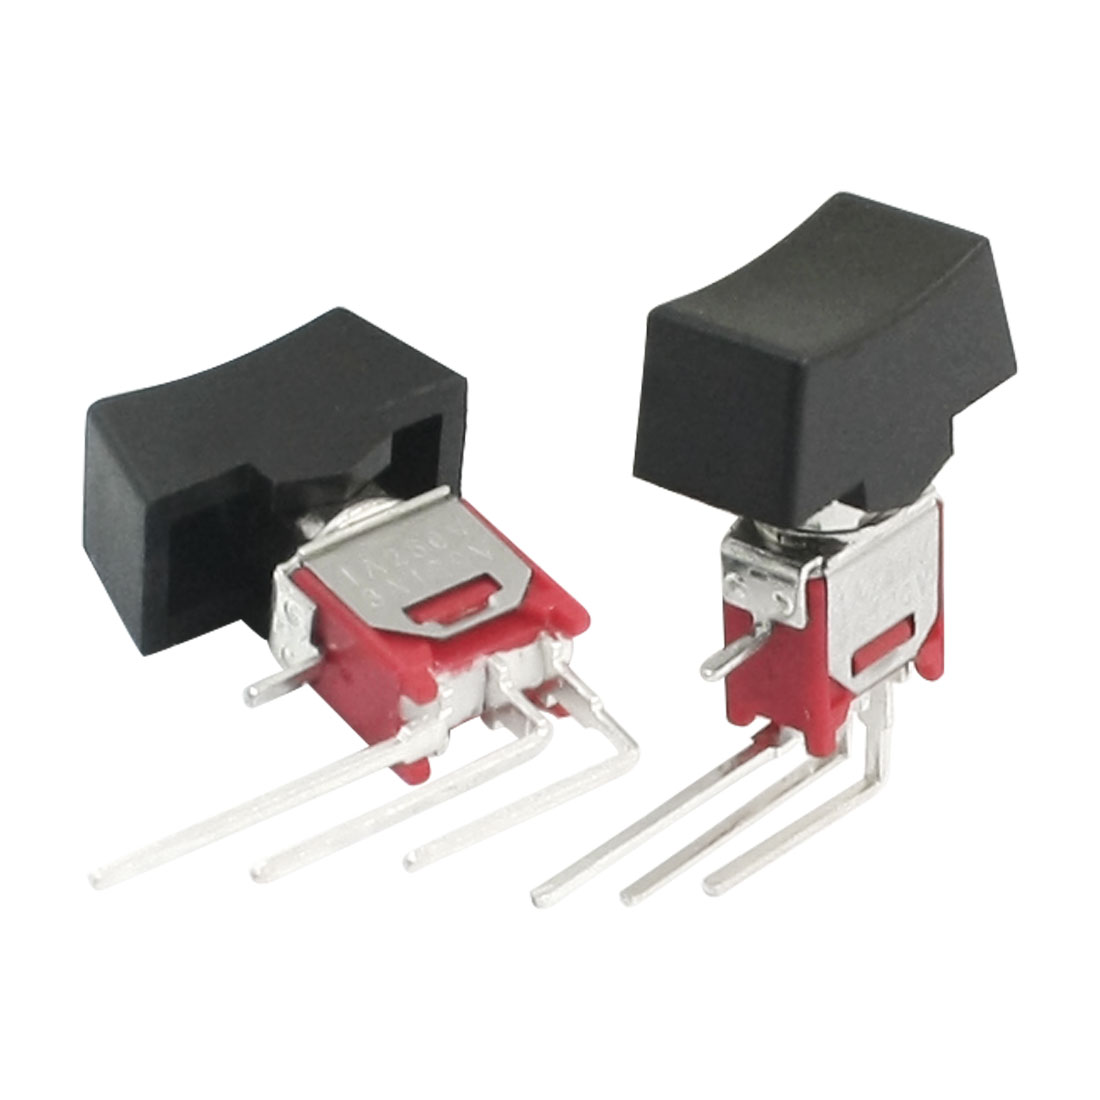 2pcs 250V 1A 120V 3A SPDT 3 Position ON/OFF/ON Toggle Switch w Cover